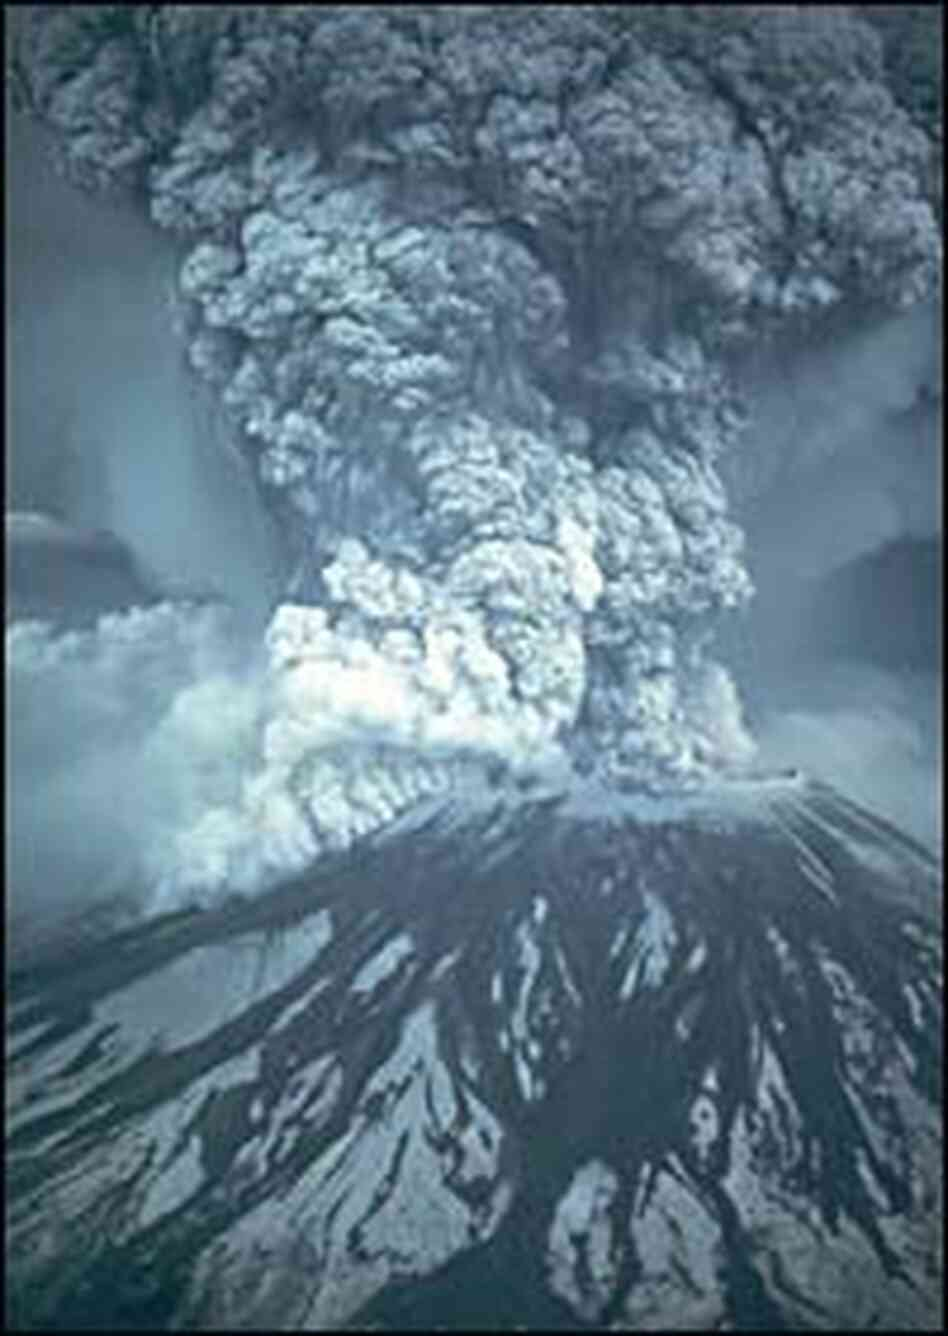 Mt. St. Helens eruption on May 18,1980